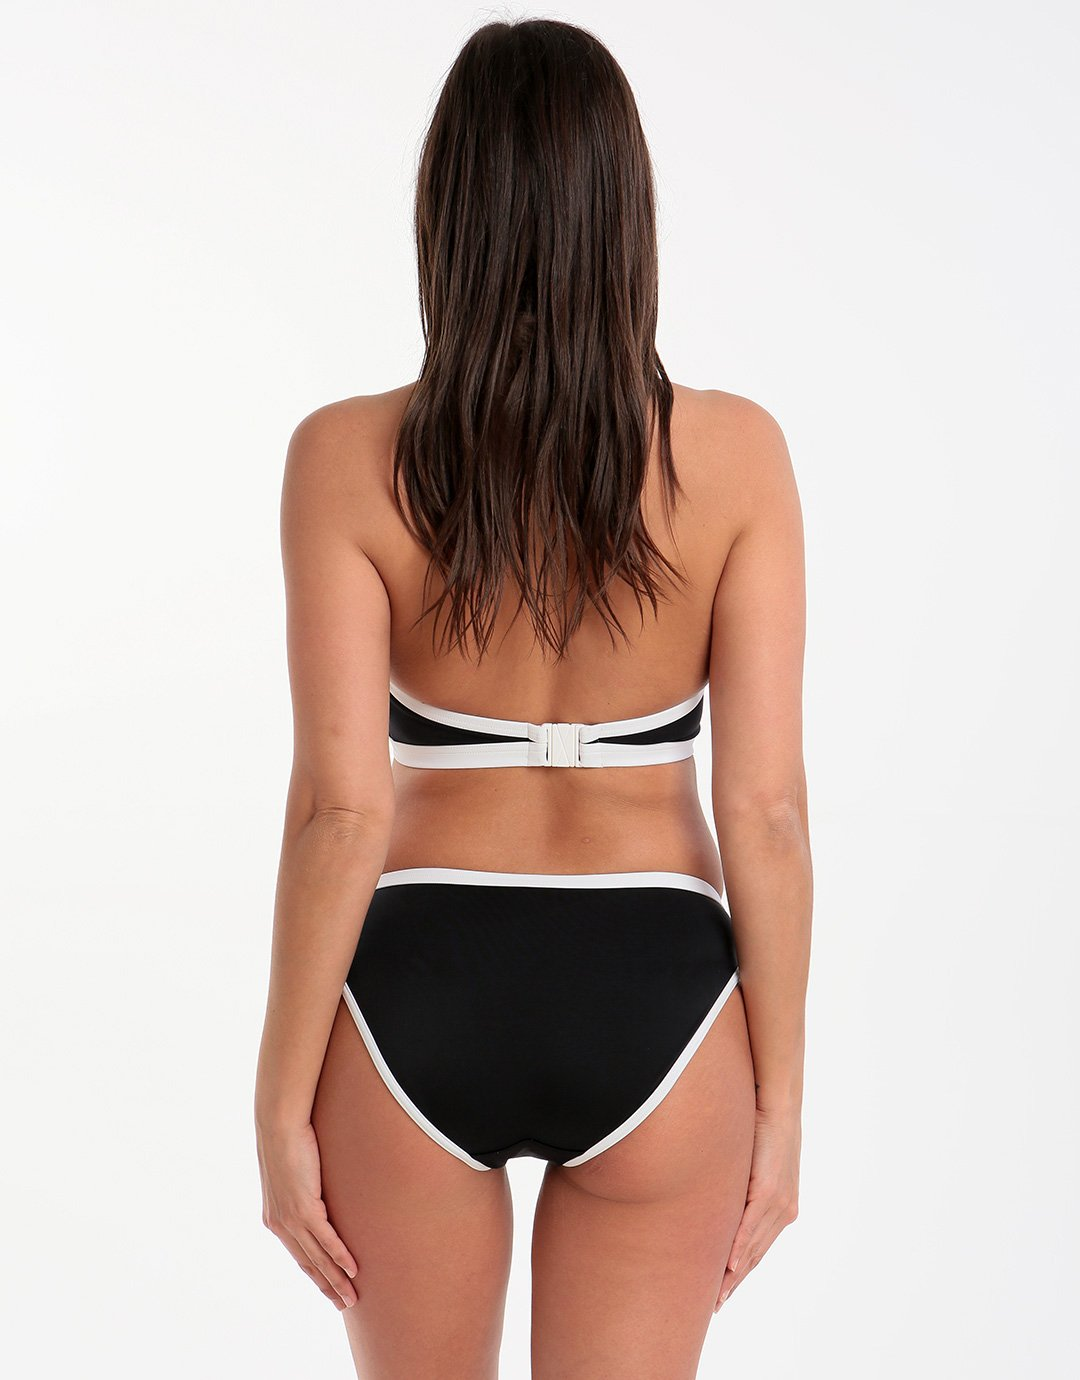 Freya Back to Black Bikini Brief - Black